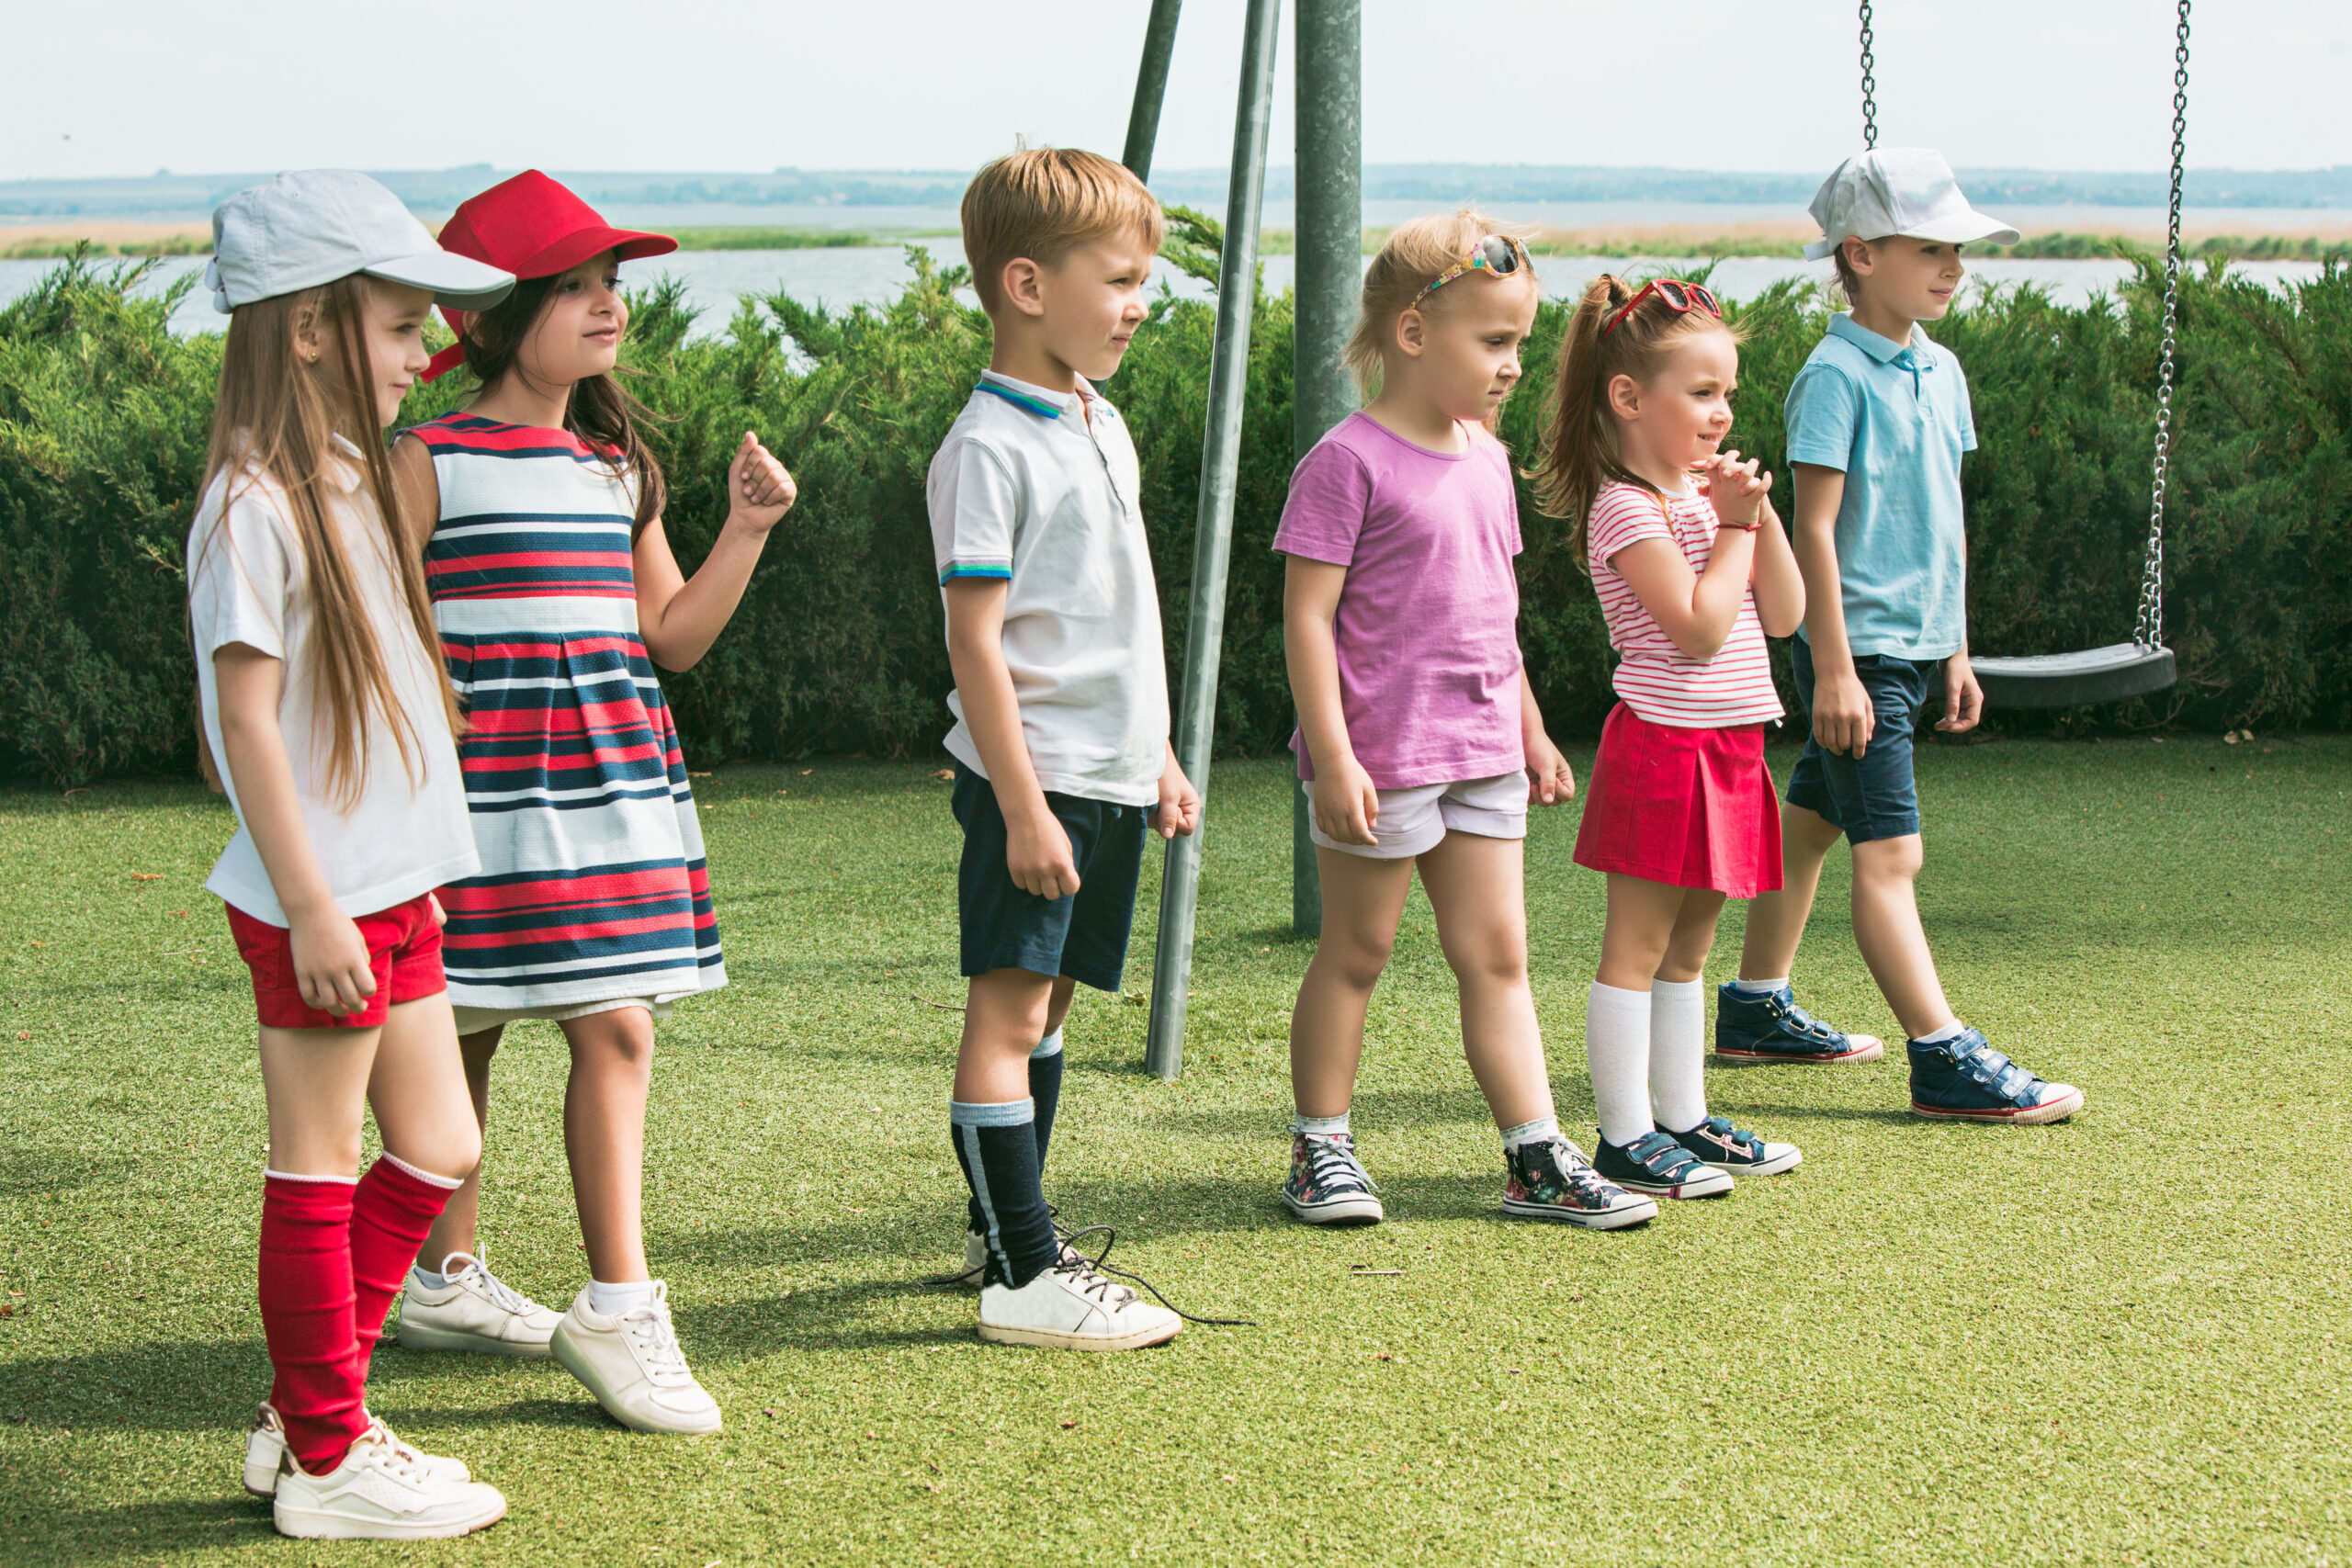 Funny starts. Kids fashion concept. The group of teen boys and girls standing at park. Children colorful clothes, lifestyle, trendy colors concepts.